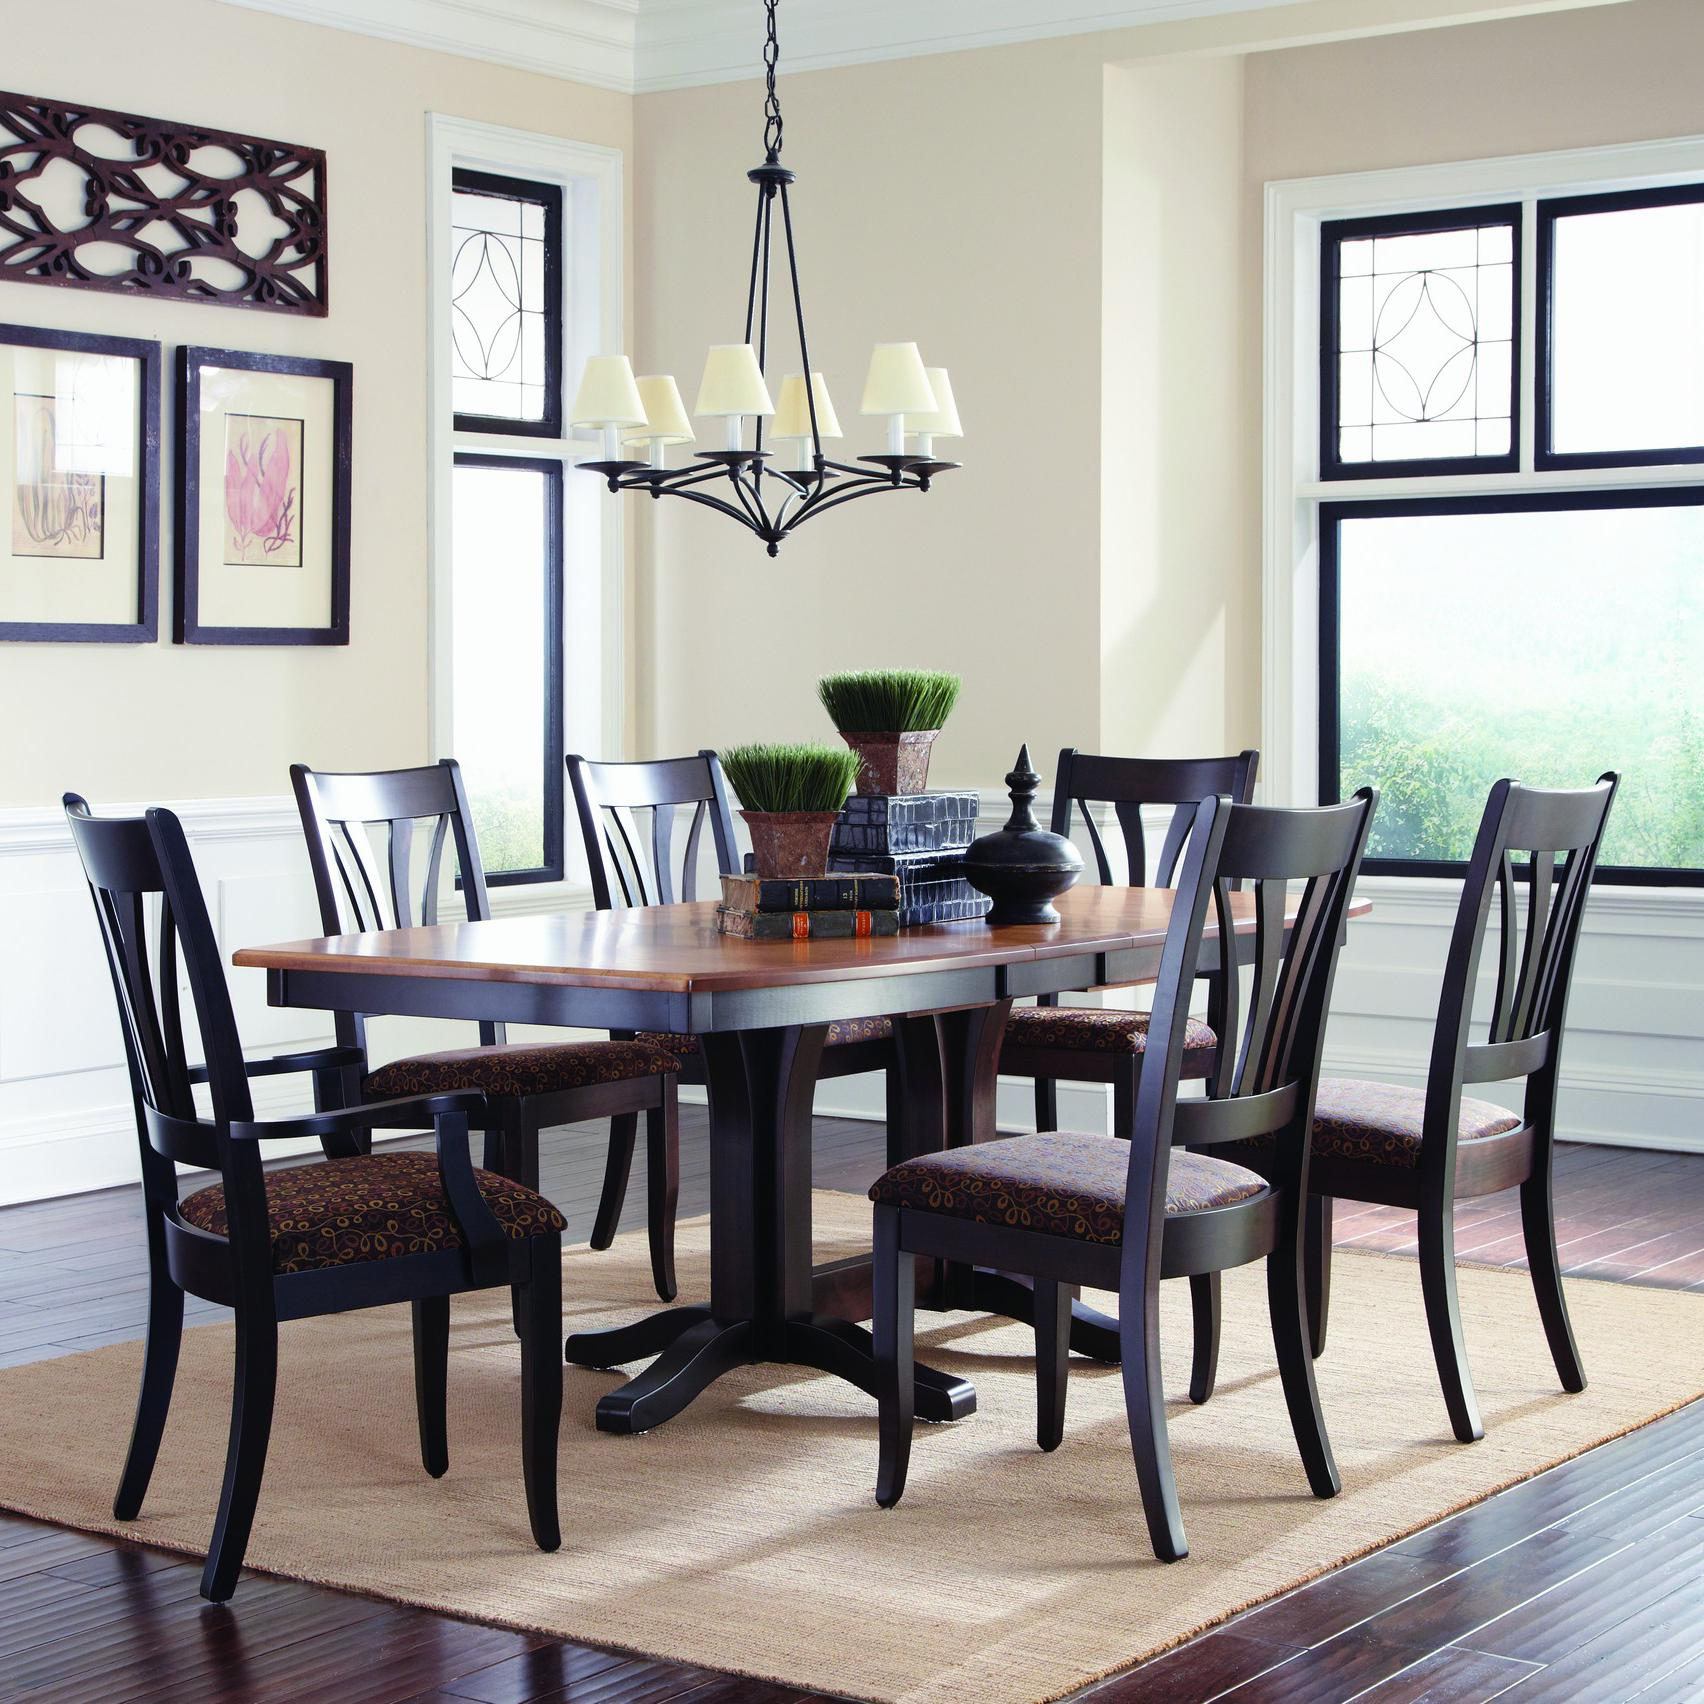 Tables En Palettes Customizable 7 Pc Table Chair Set By Palettes By Winesburg